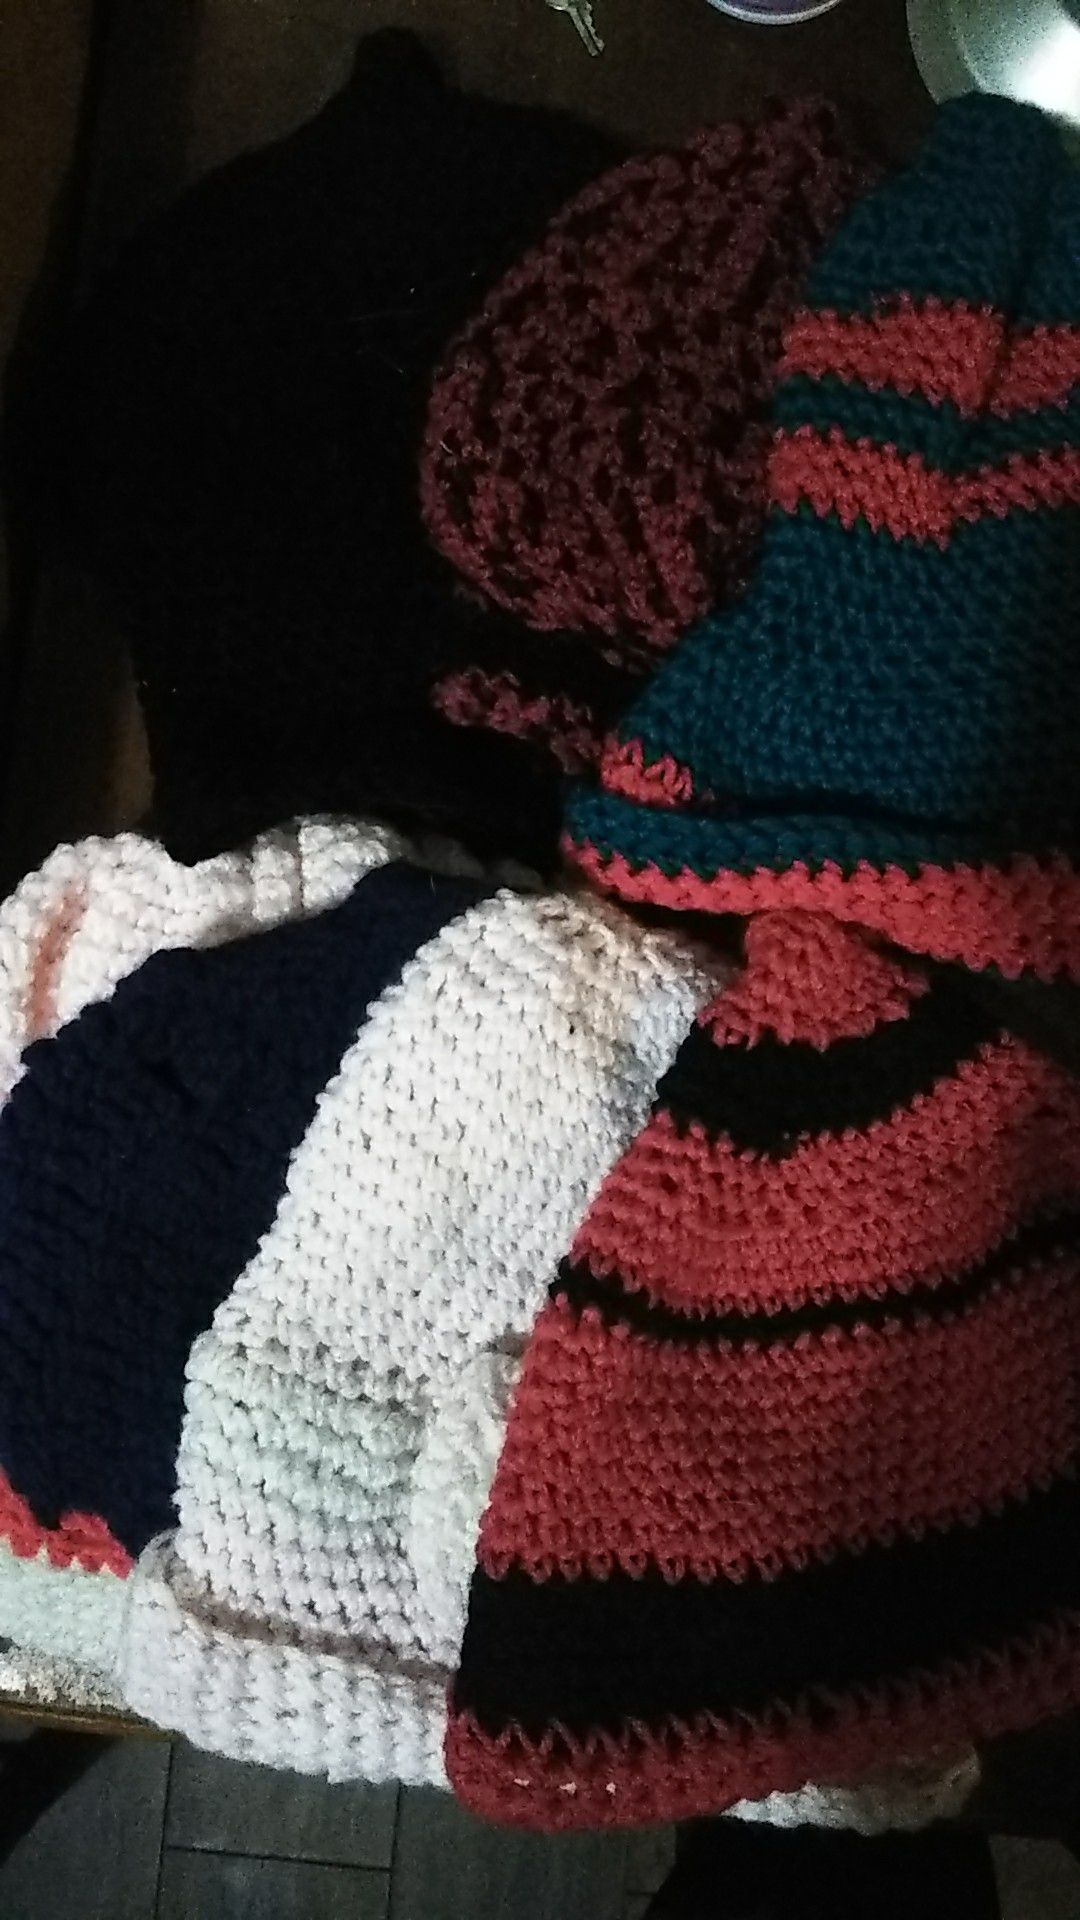 Crowshay beanies 5$ dog sweaters 10$ a piece